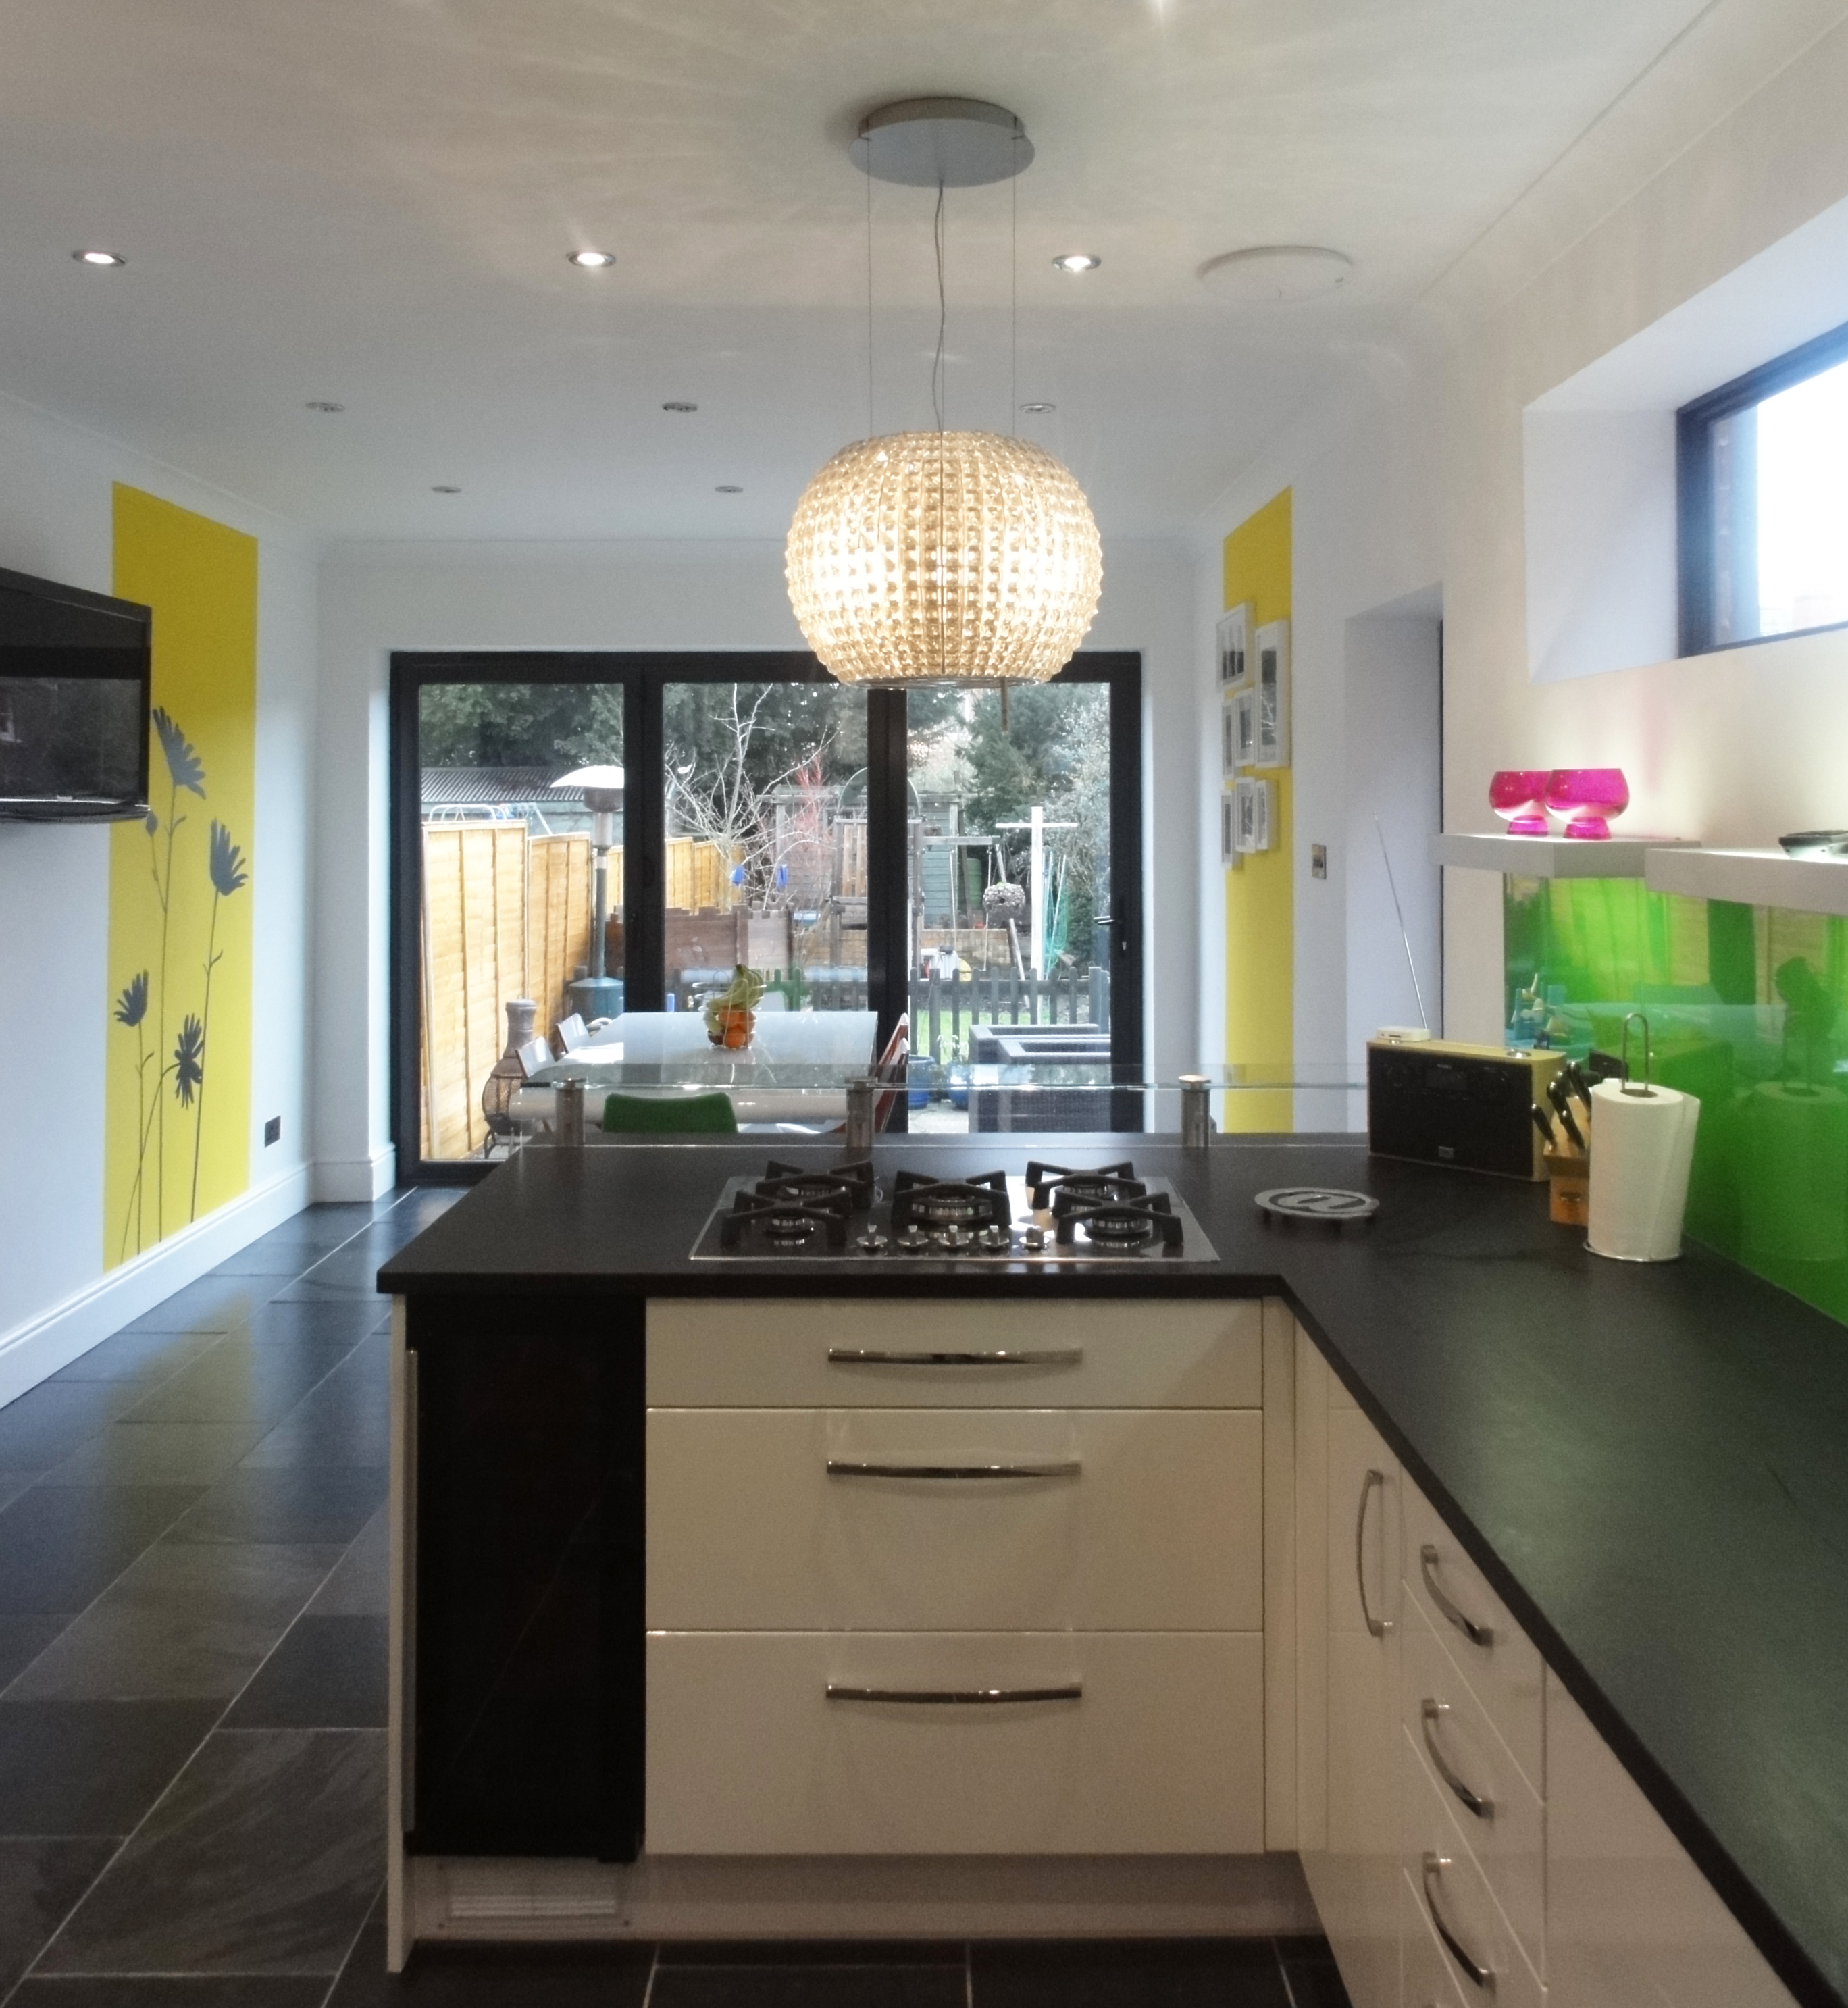 Interior architecture remodeling in Newbury by Inspiration Architects. Modern kitchen designed to let in maximum light, with granite worktops, pale wood finished cabinets and grey tiled flooring.